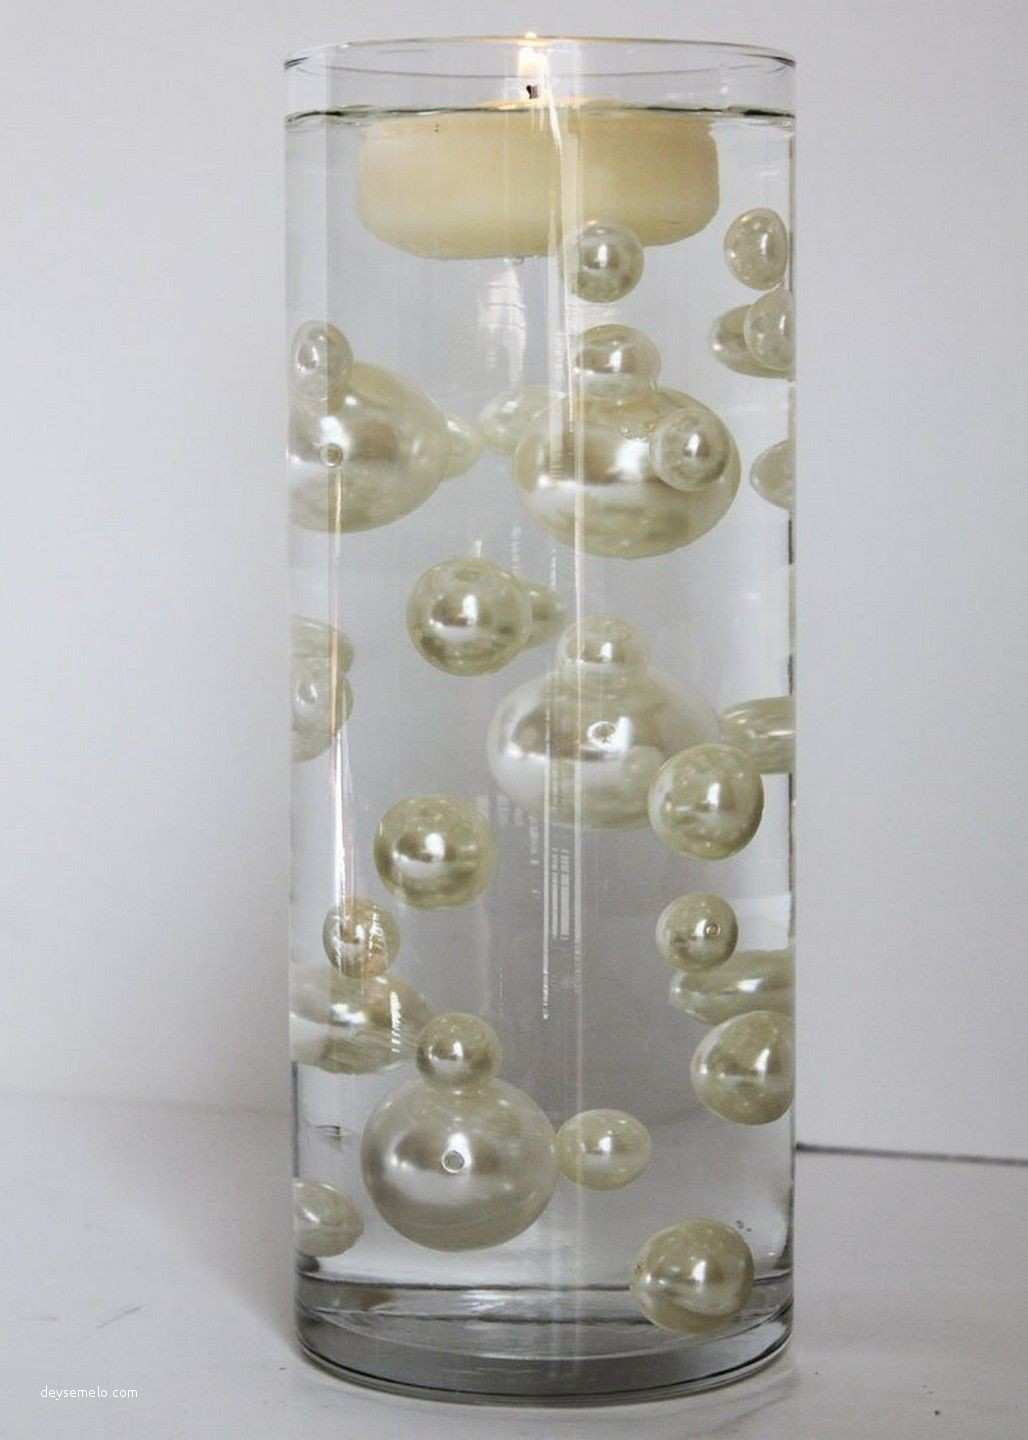 mirrored glass vases wholesale of best affordable wedding decorators near me of used wedding decor pertaining to best affordable wedding decorators near me of used wedding decor tall vasesh vases cheap eiffel tower vasesi 0d